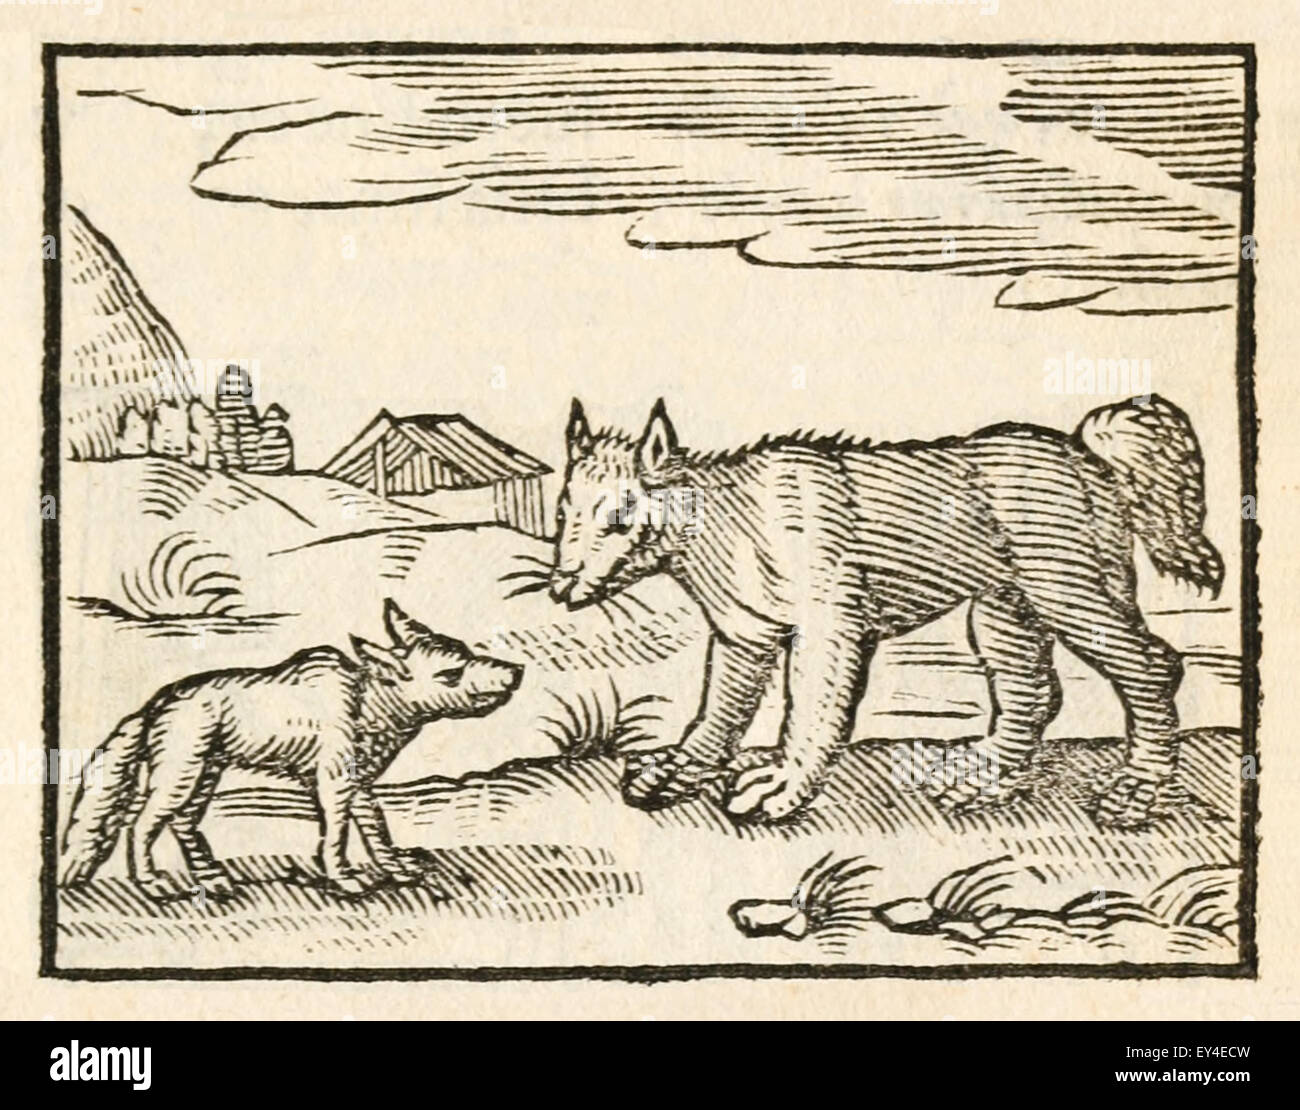 'The Dog and the Wolf' fable by Aesop (circa 600BC). A famished wolf meets a well-fed dog and compliments - Stock Image